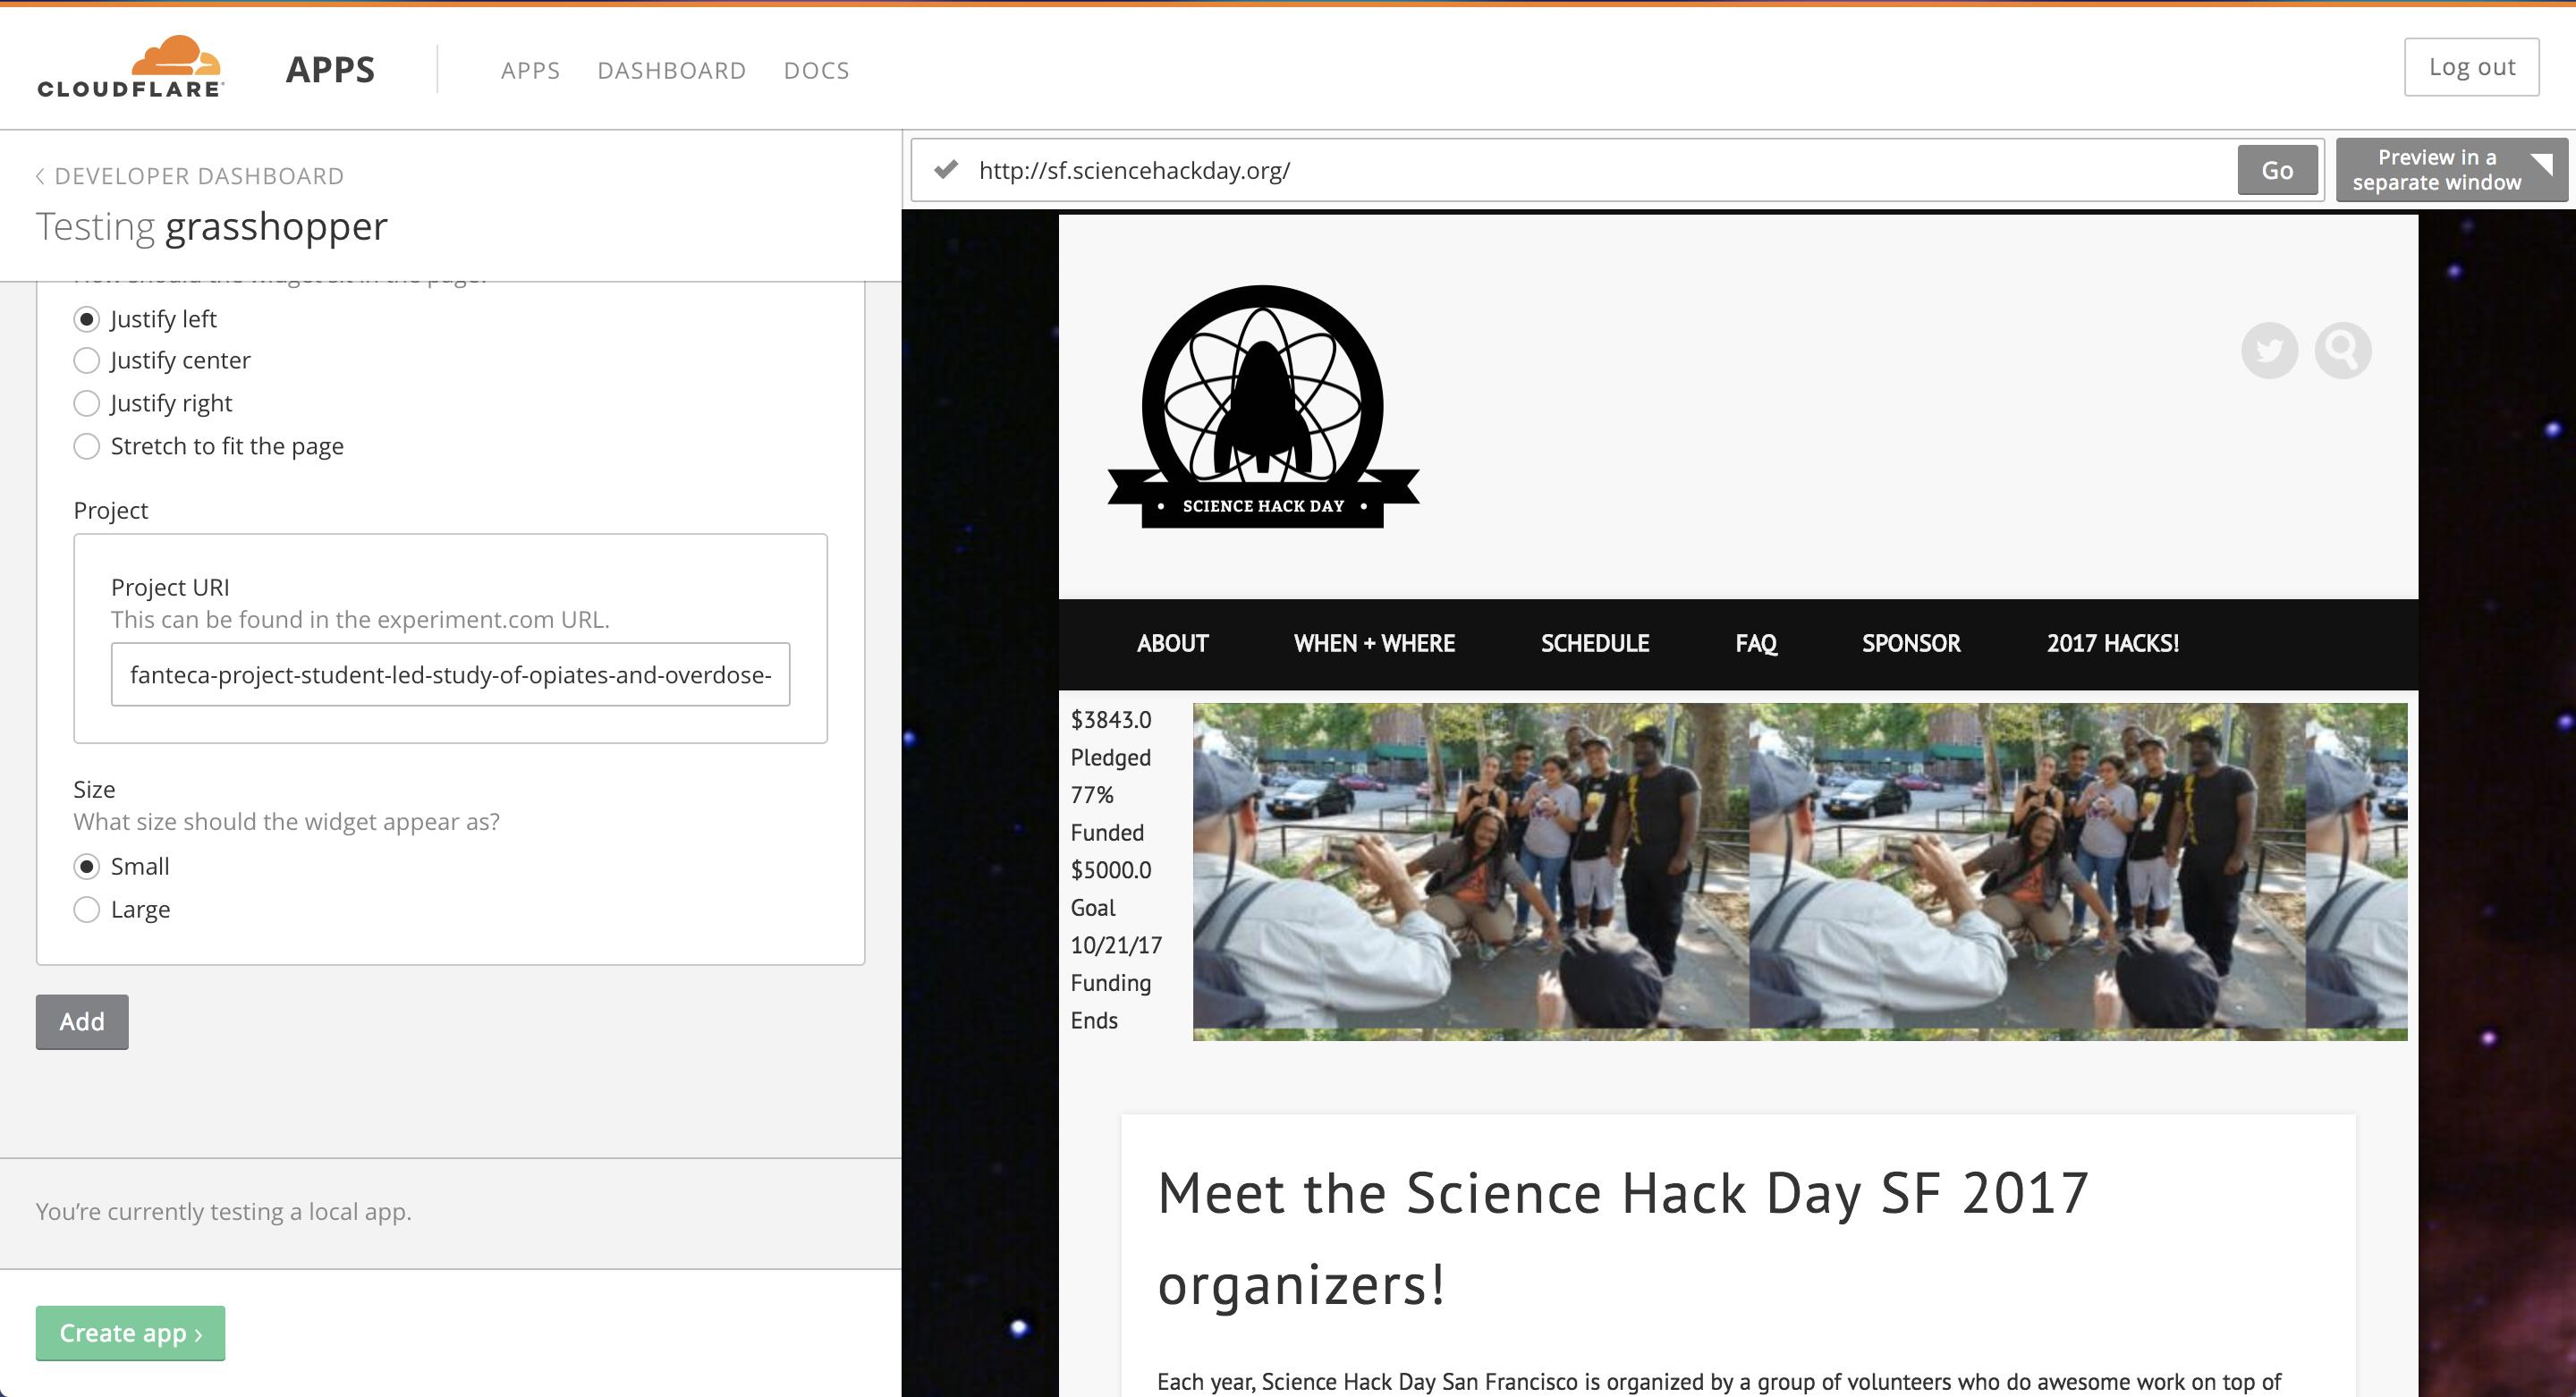 Demo of grasshopper on Science Hack Day's home page using the Cloudlfare Apps previewer